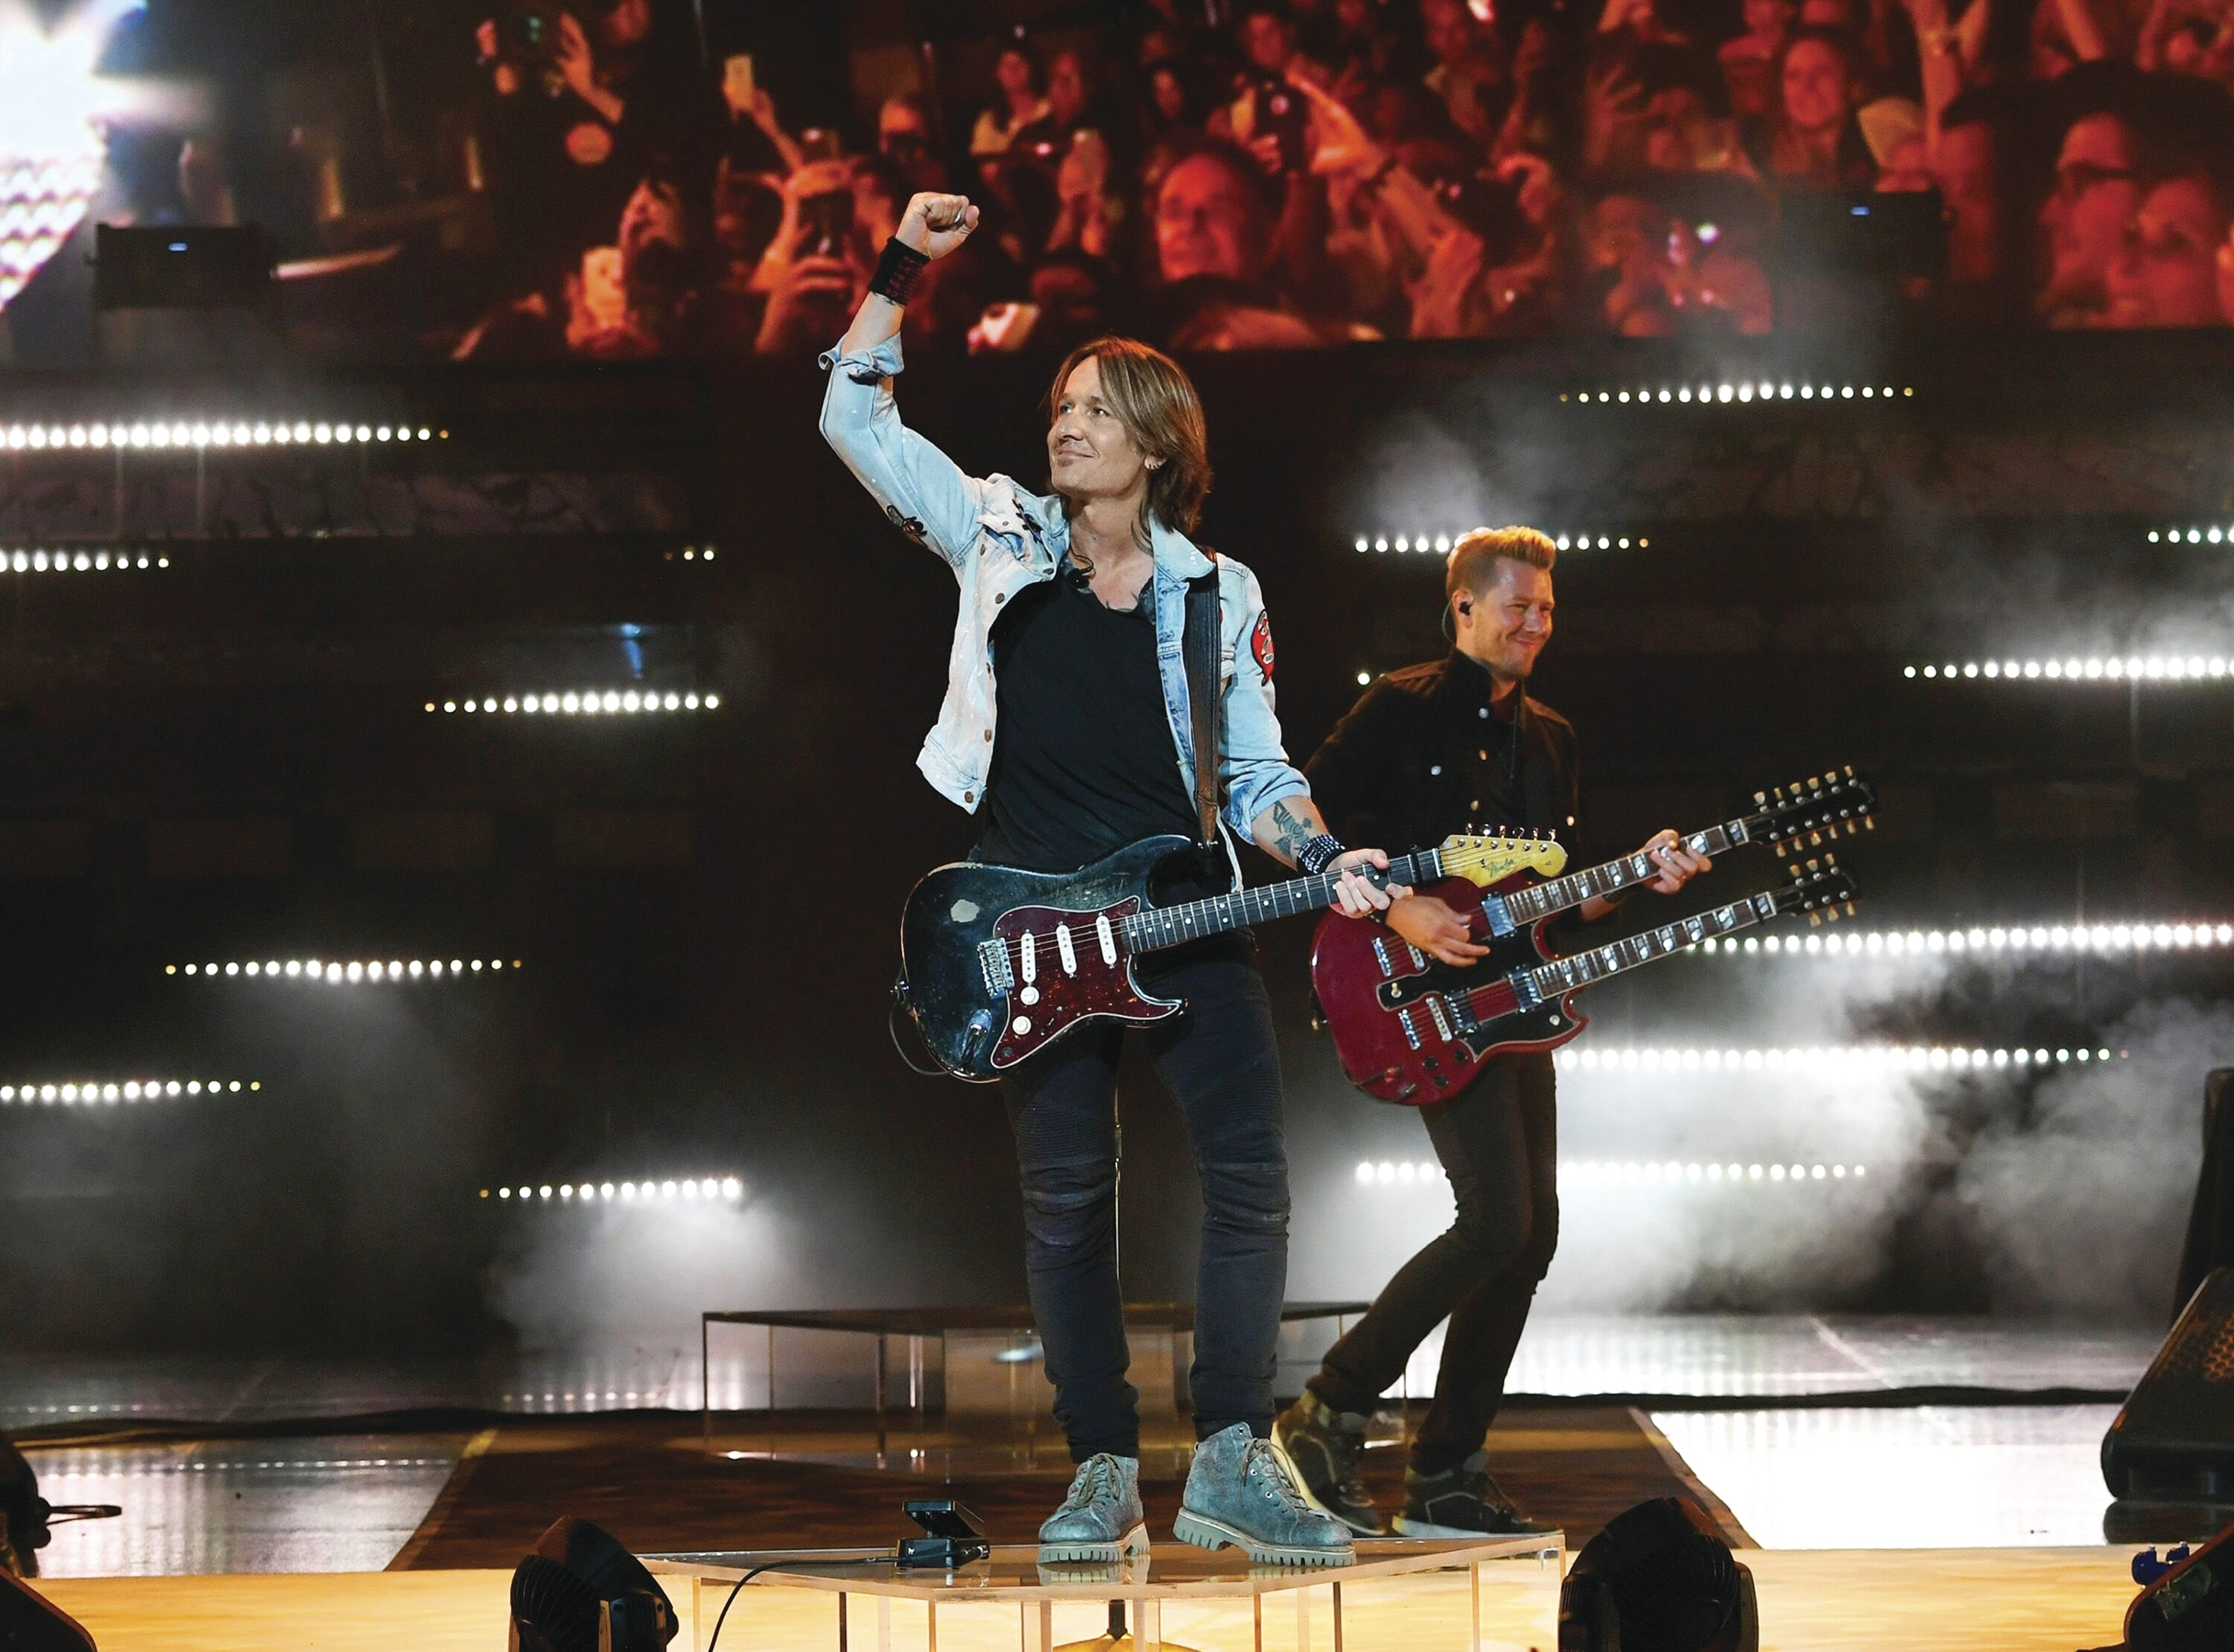 Keith_Urban_305JJ.jpg